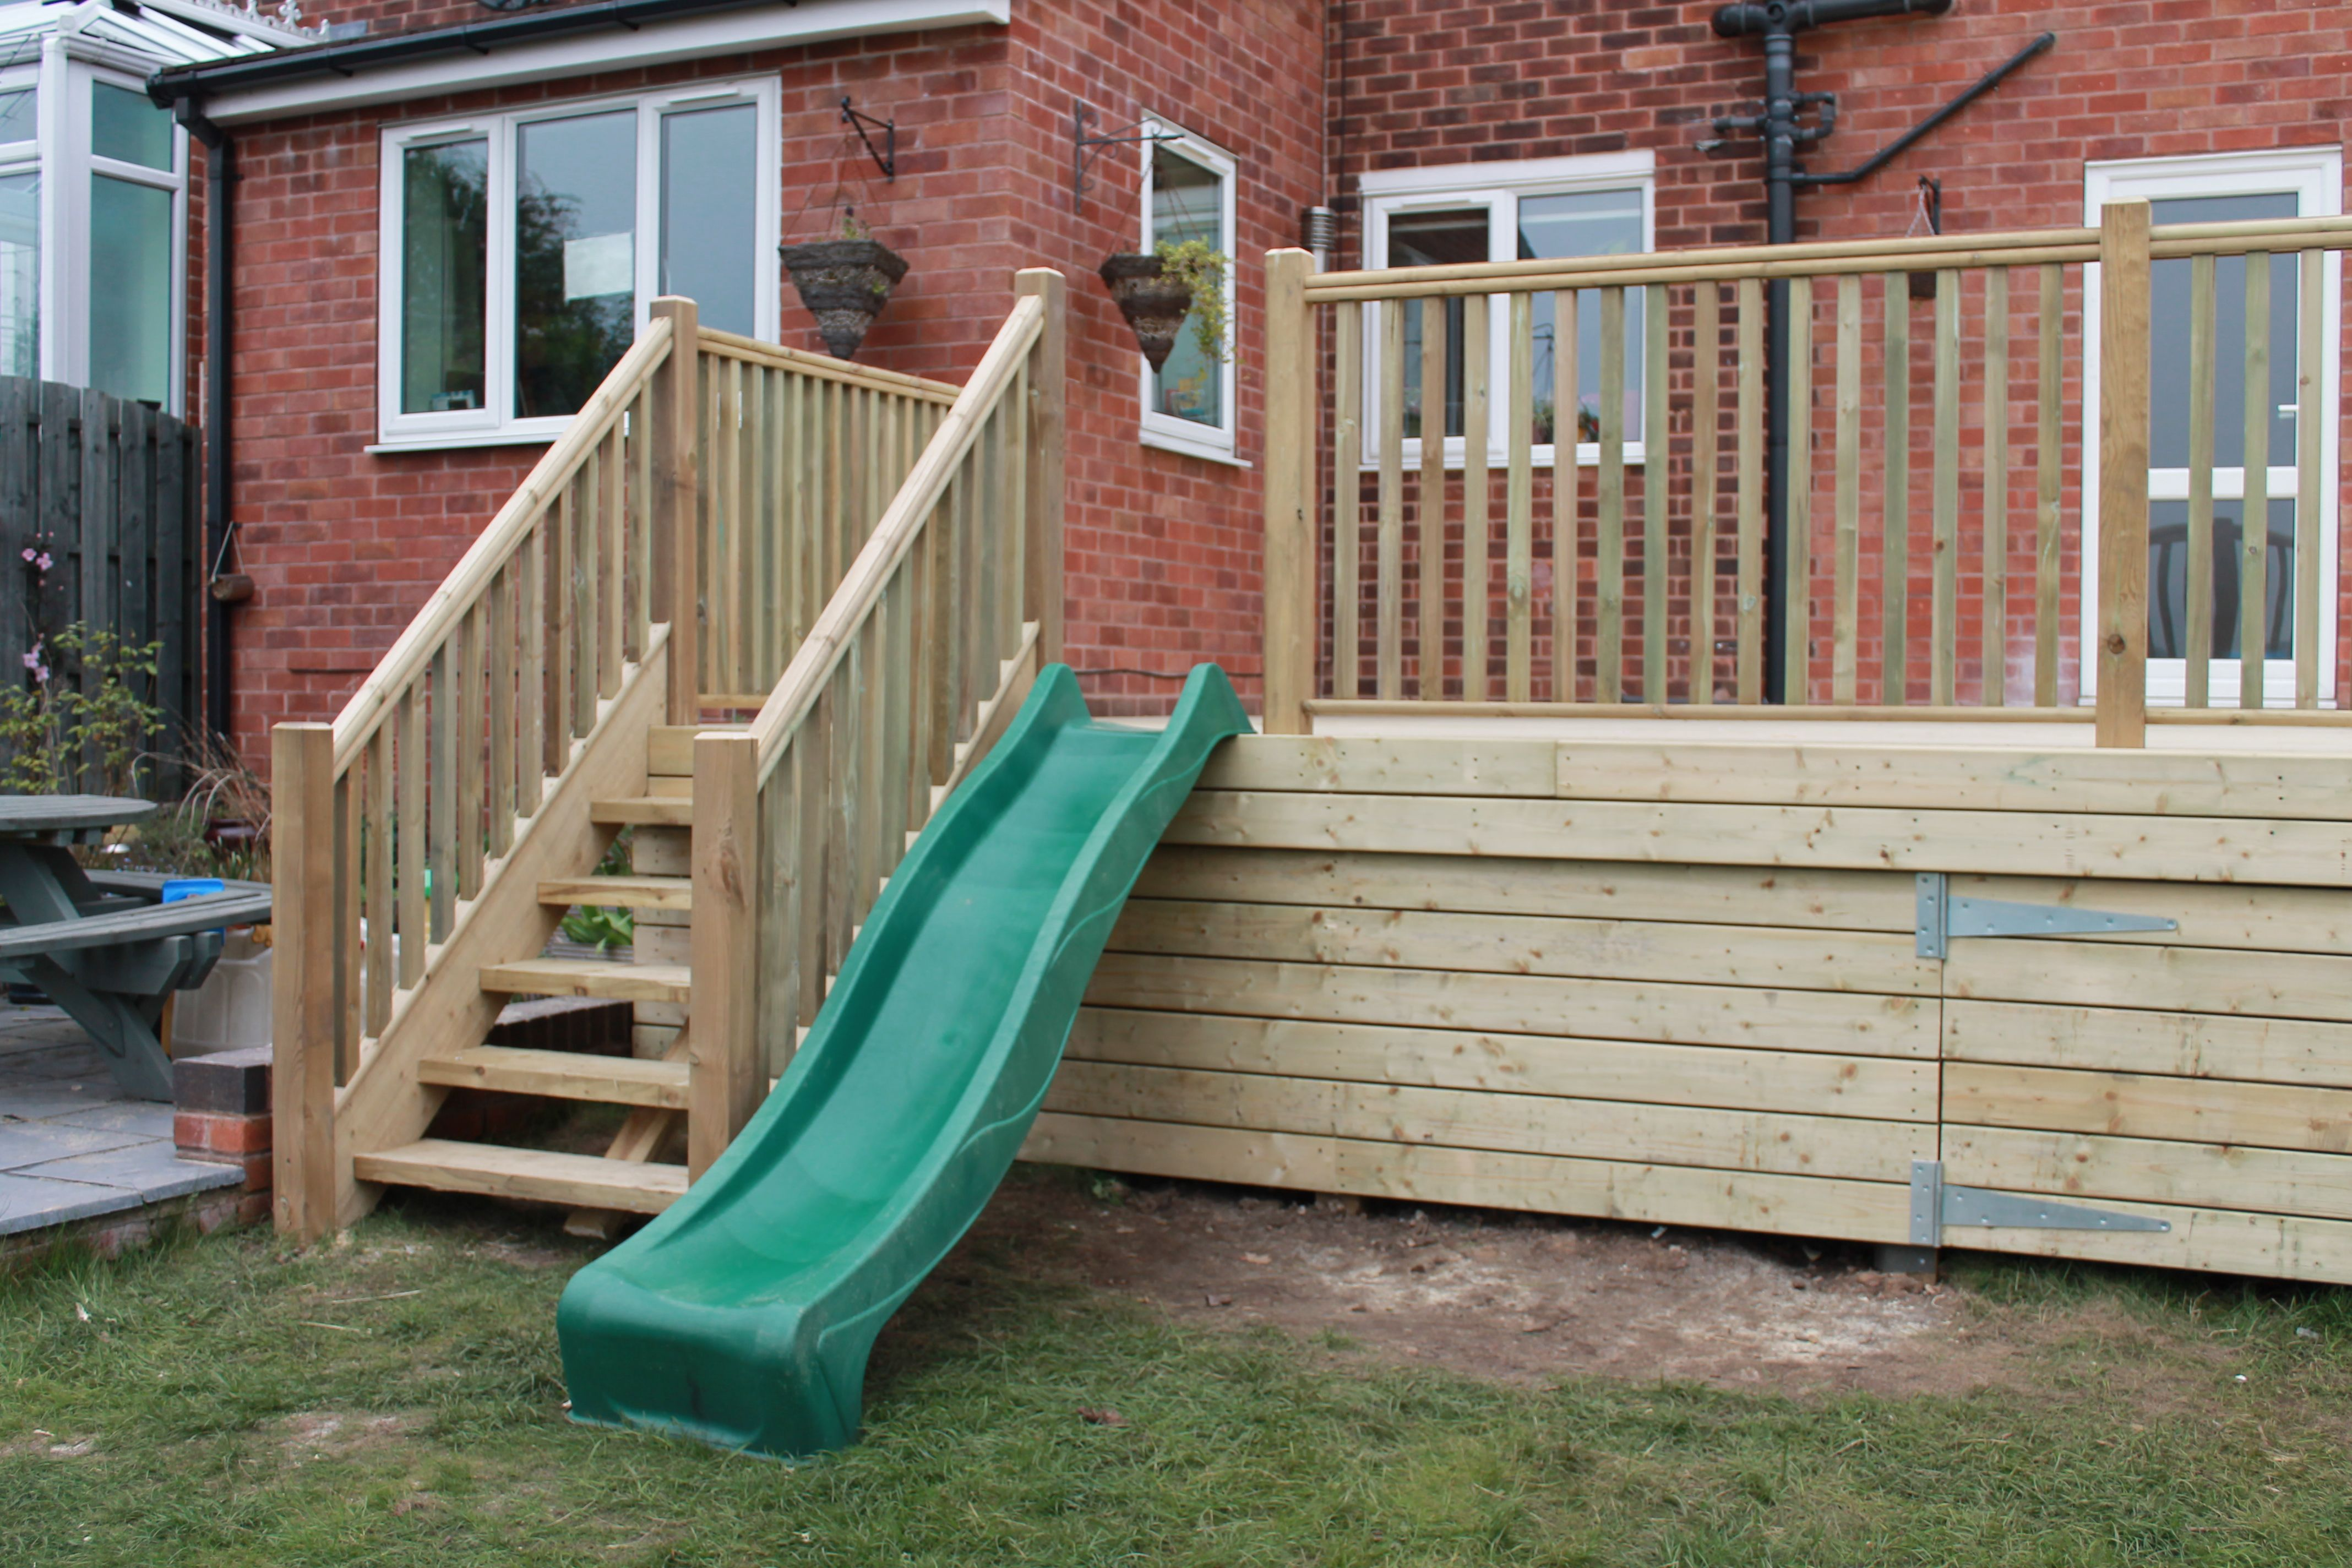 Raised Decking With Childrens Slide Play Area Completed In 400 x 300